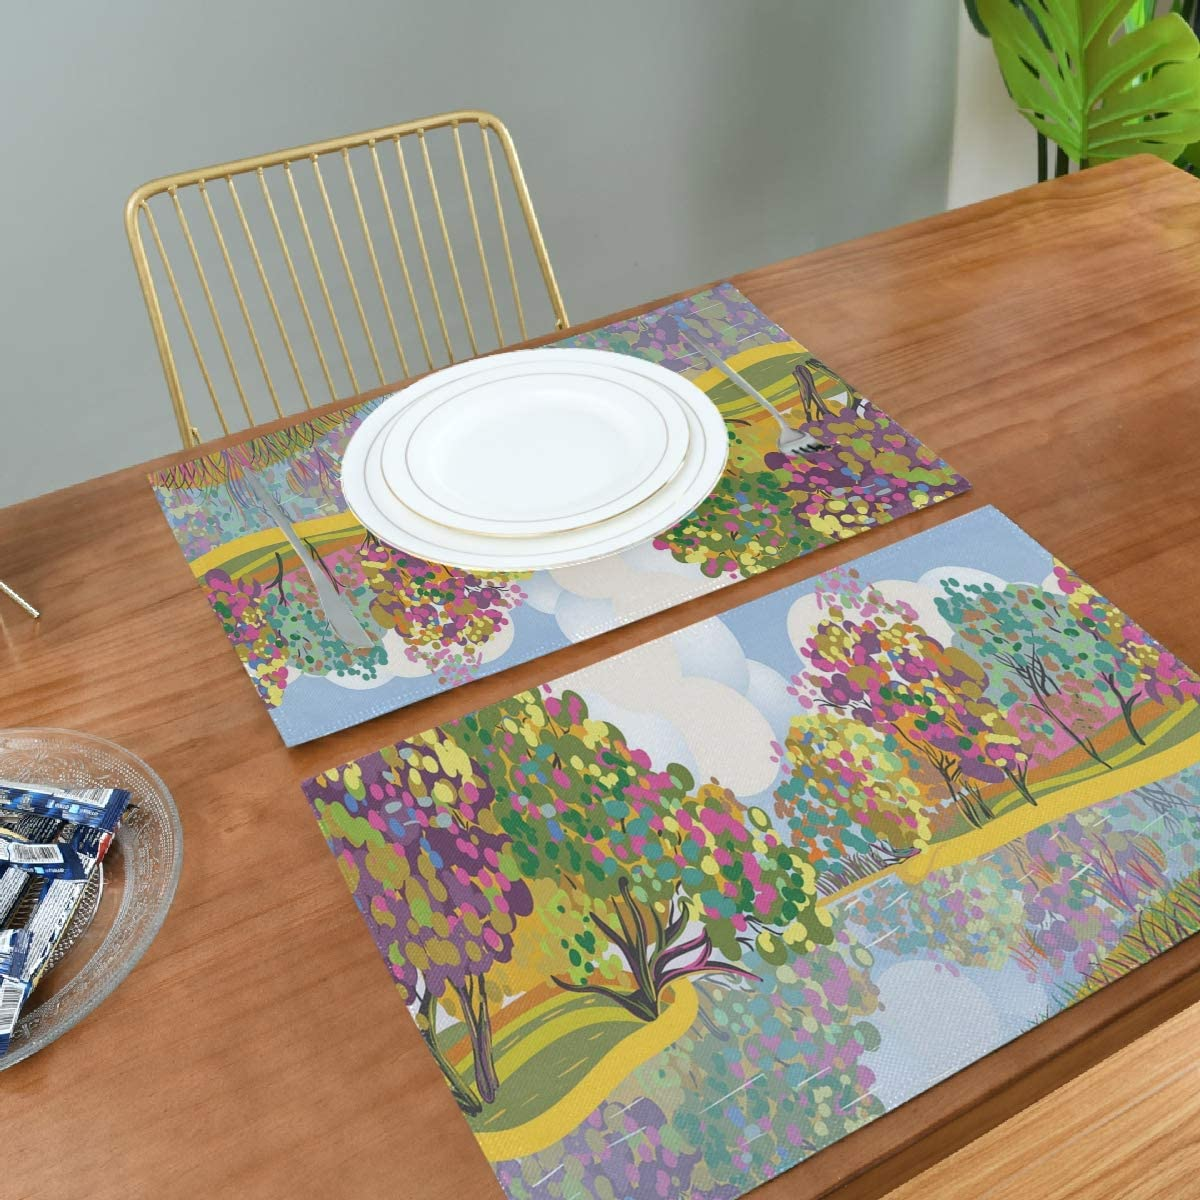 Amazon.com: Jacksome Garden Placemats for Dining Table Placemat